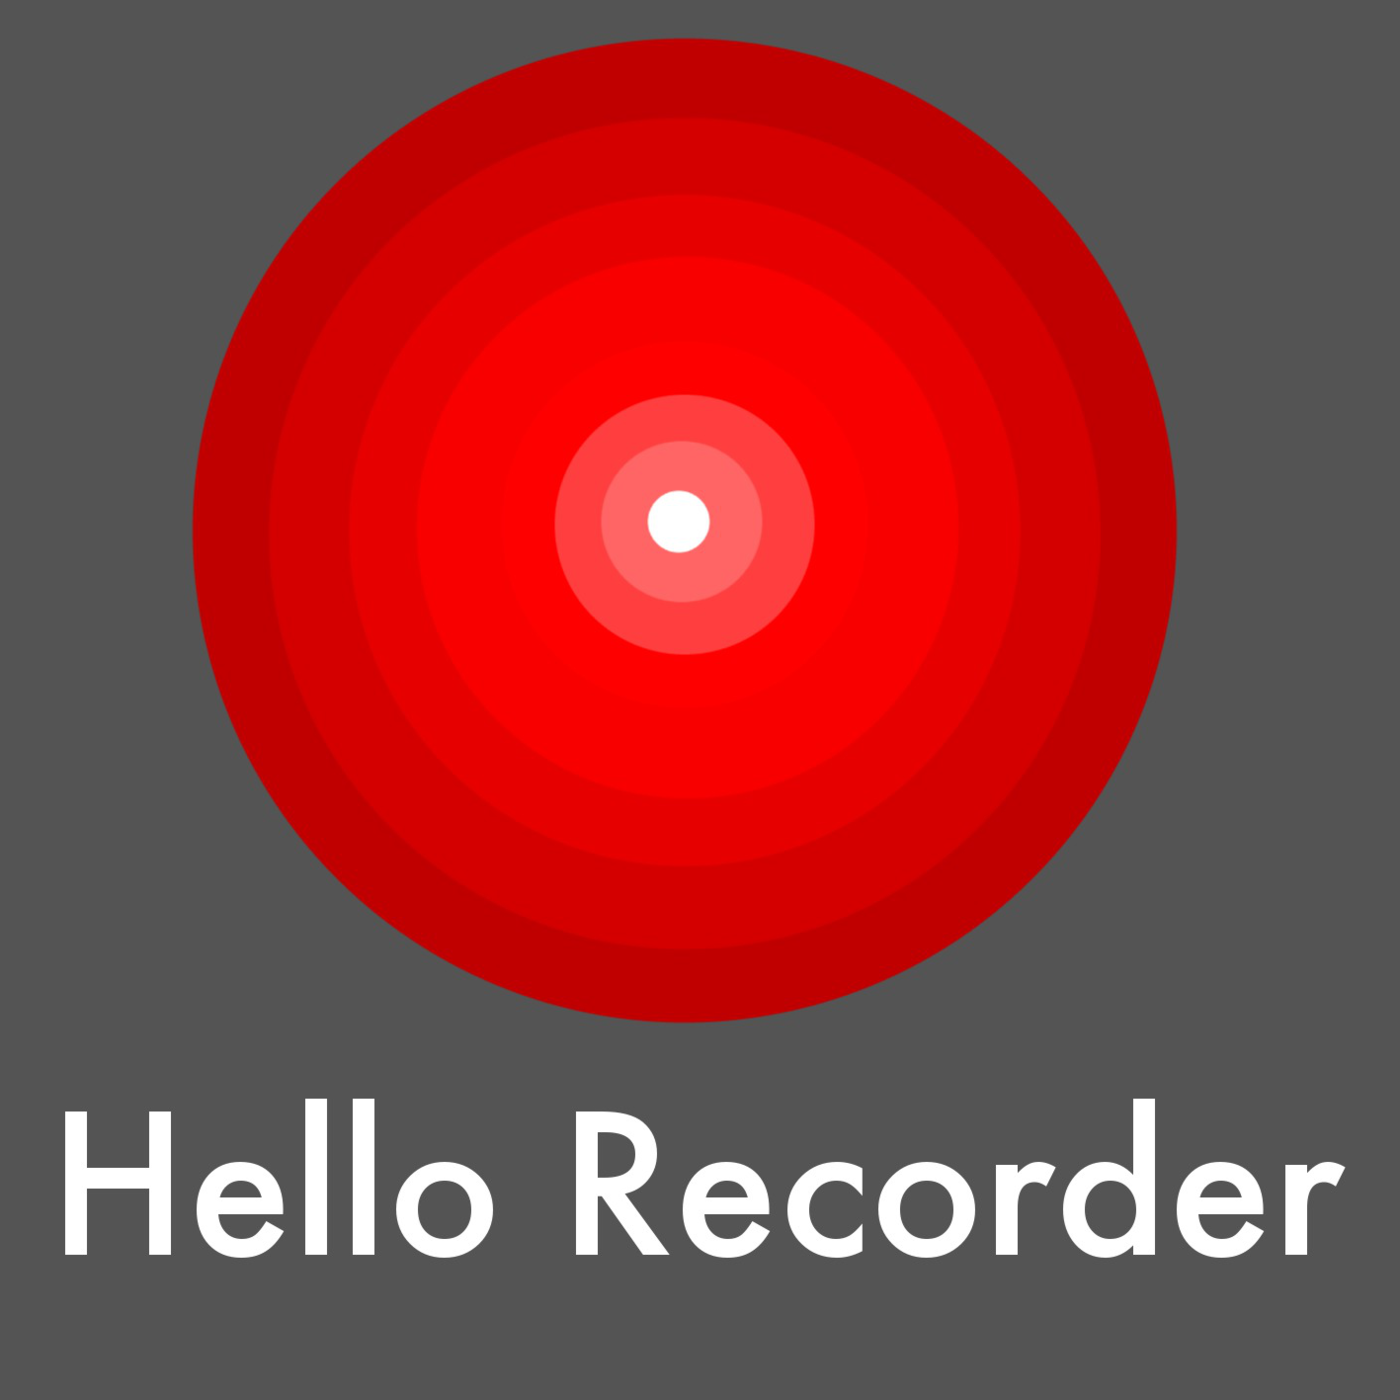 Hello Recorder